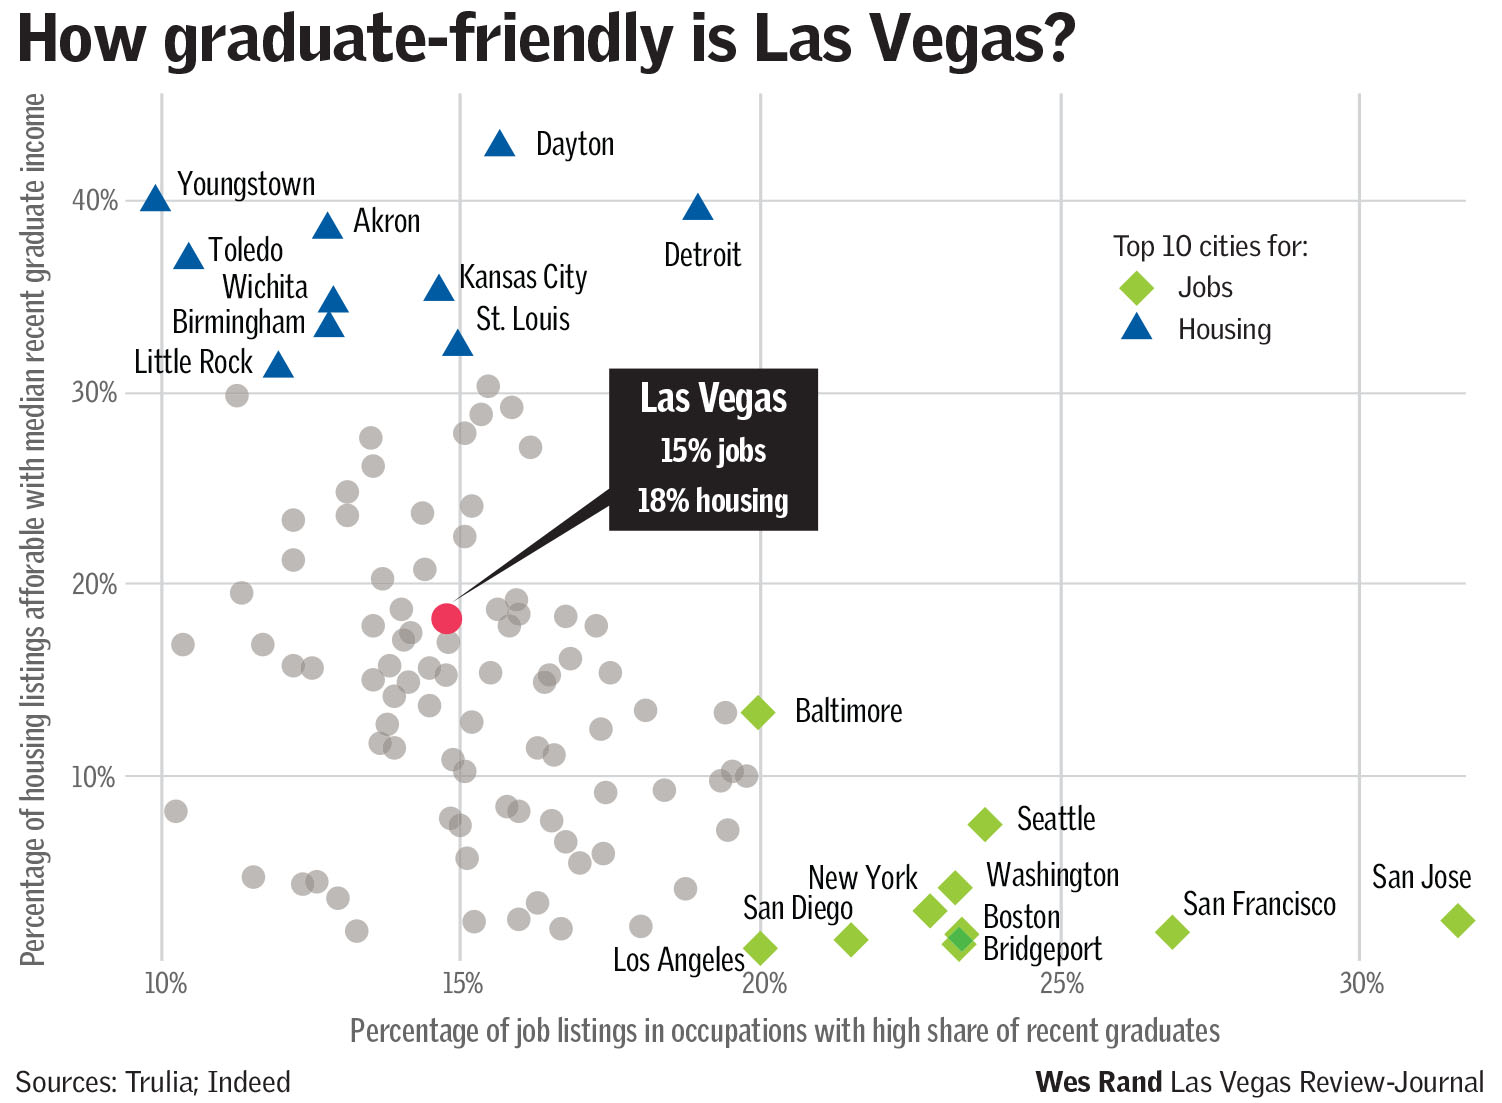 Graduate-friendly cities